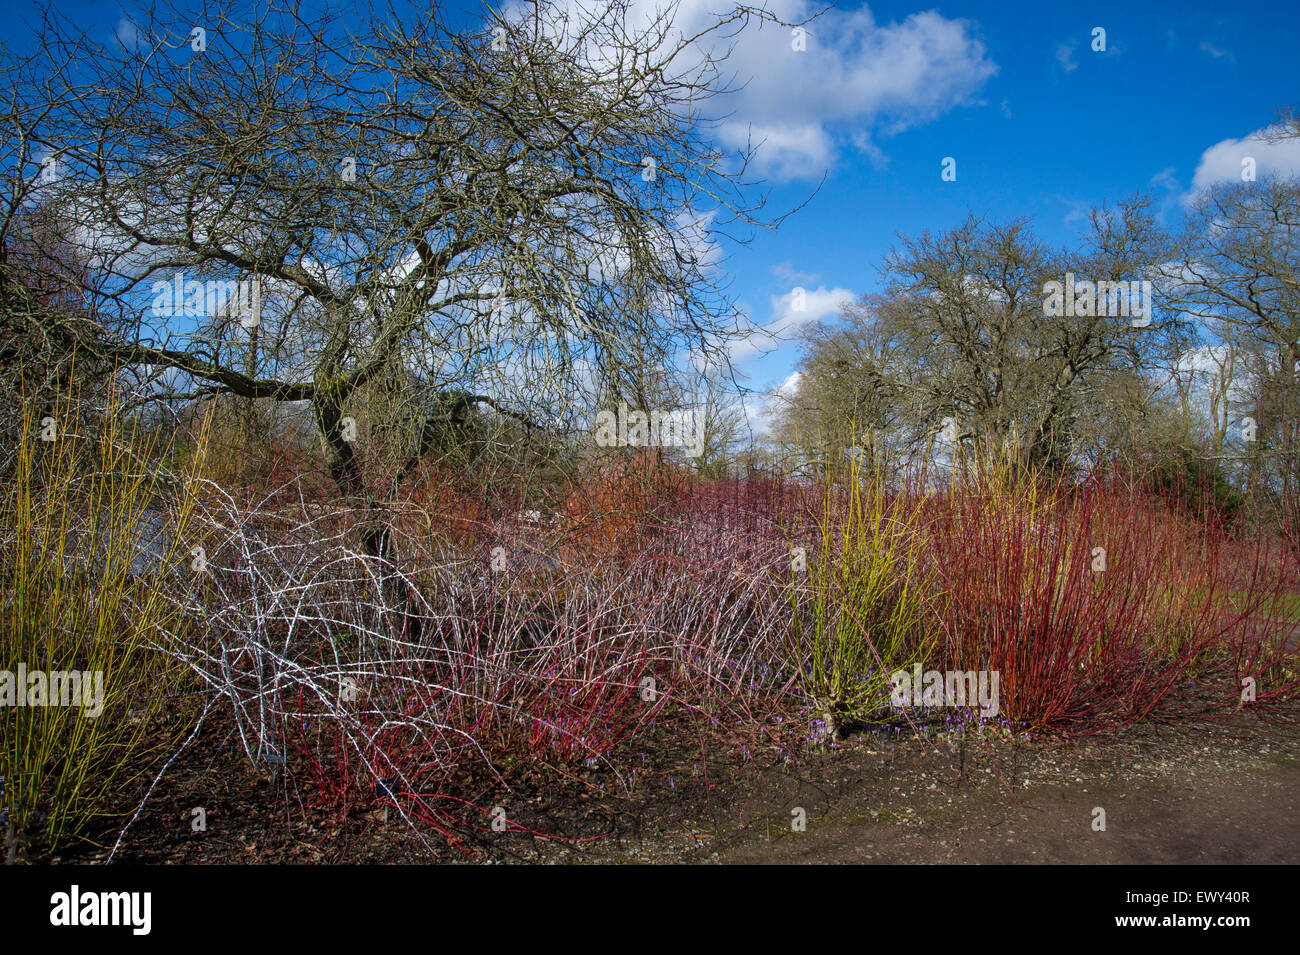 Colourful Stems of Salix and Cornus in the winter garden at RHS Wisley - Stock Image